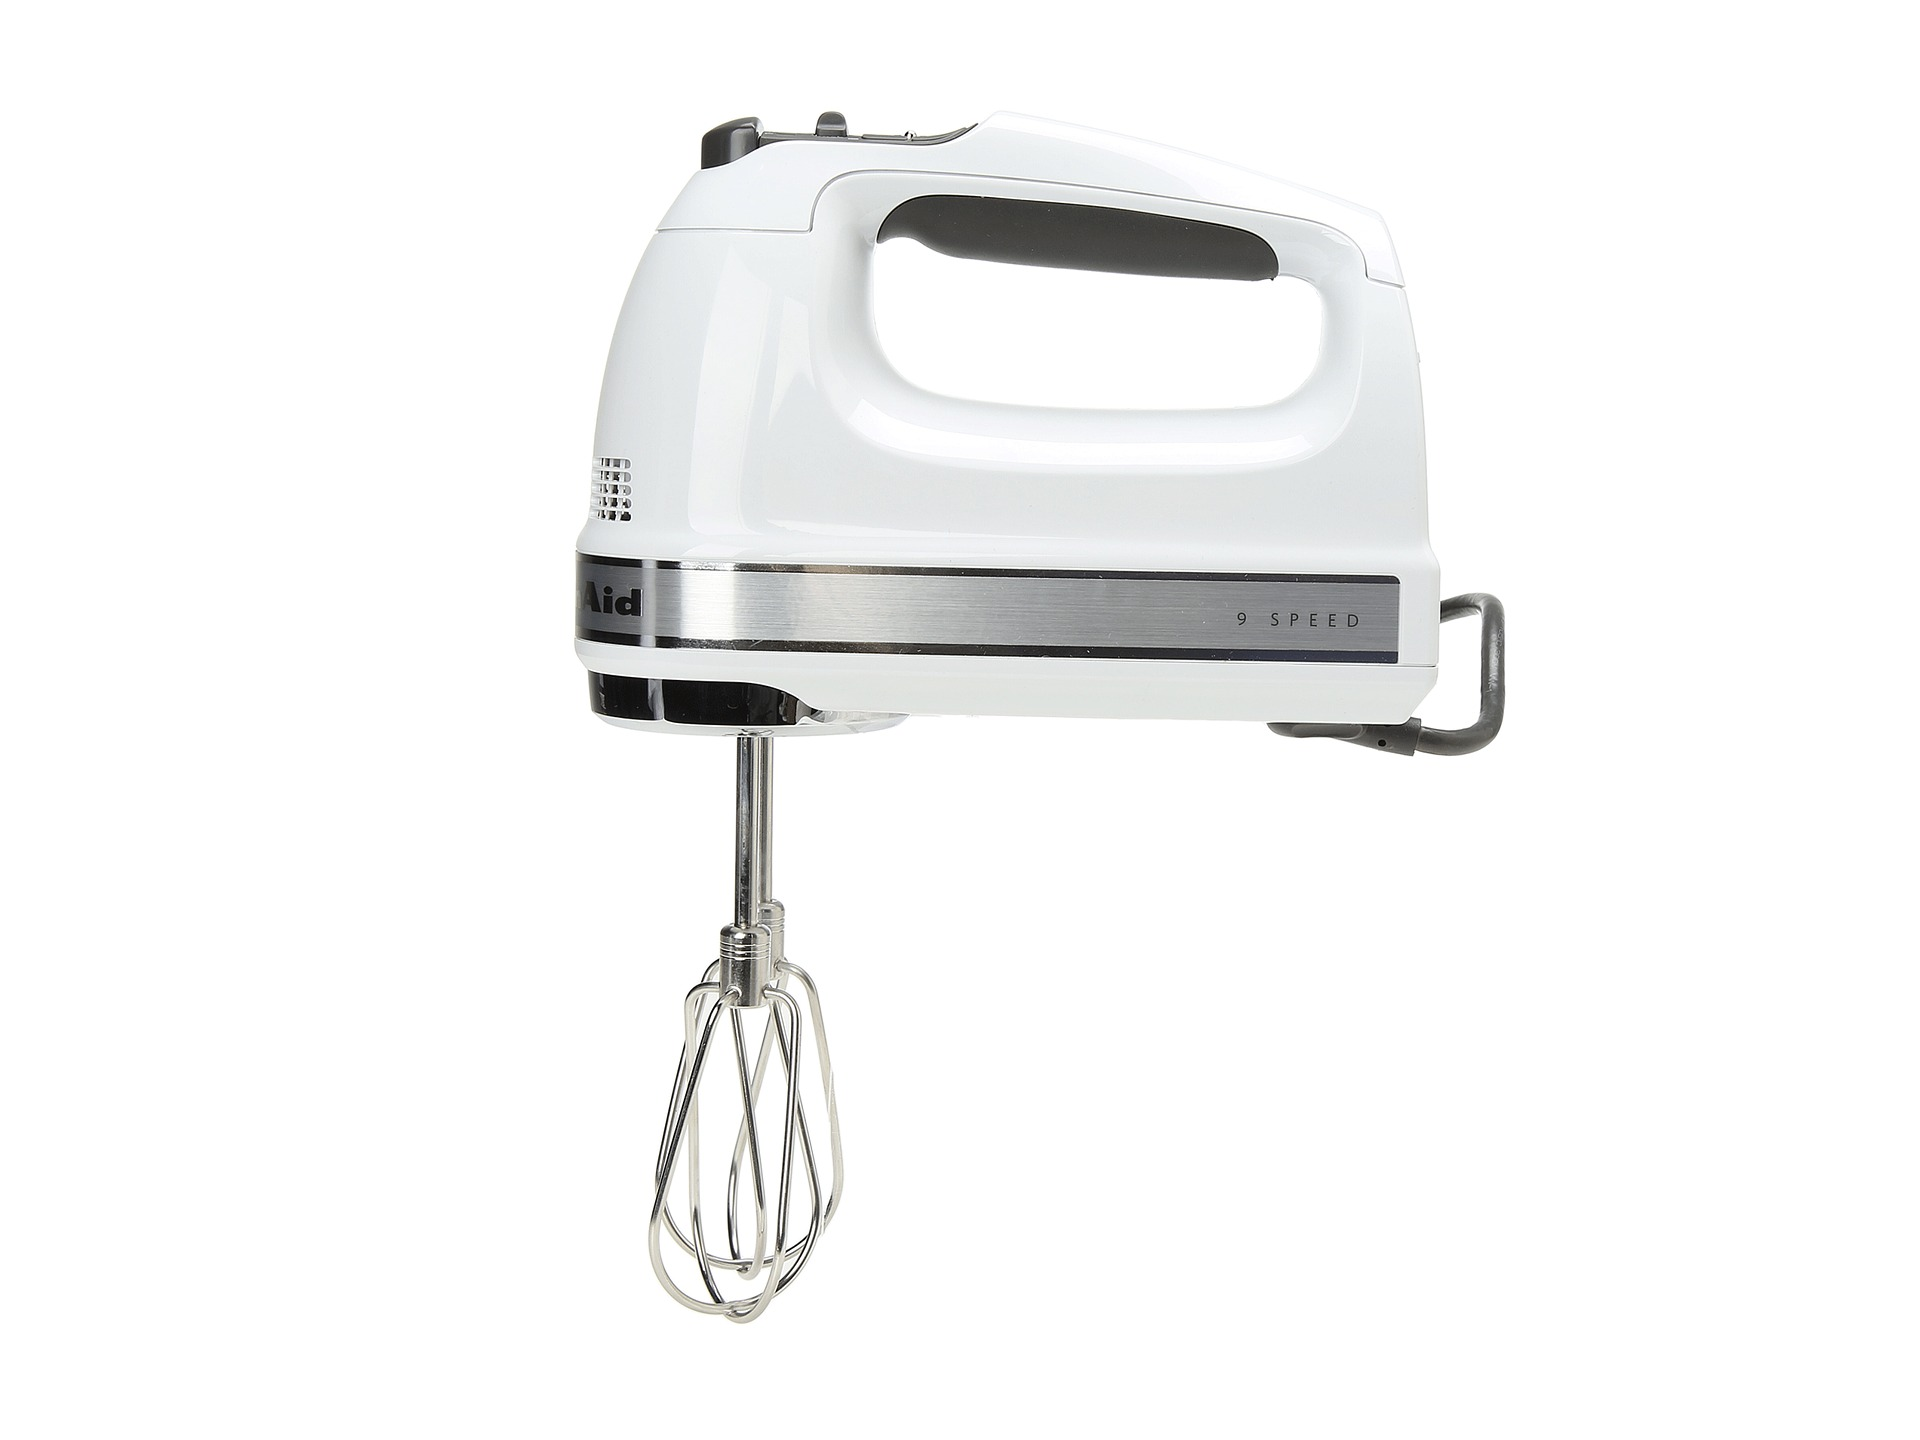 Kitchenaid khm926 9 speed hand mixer shipped free at zappos for Kitchenaid hand mixer